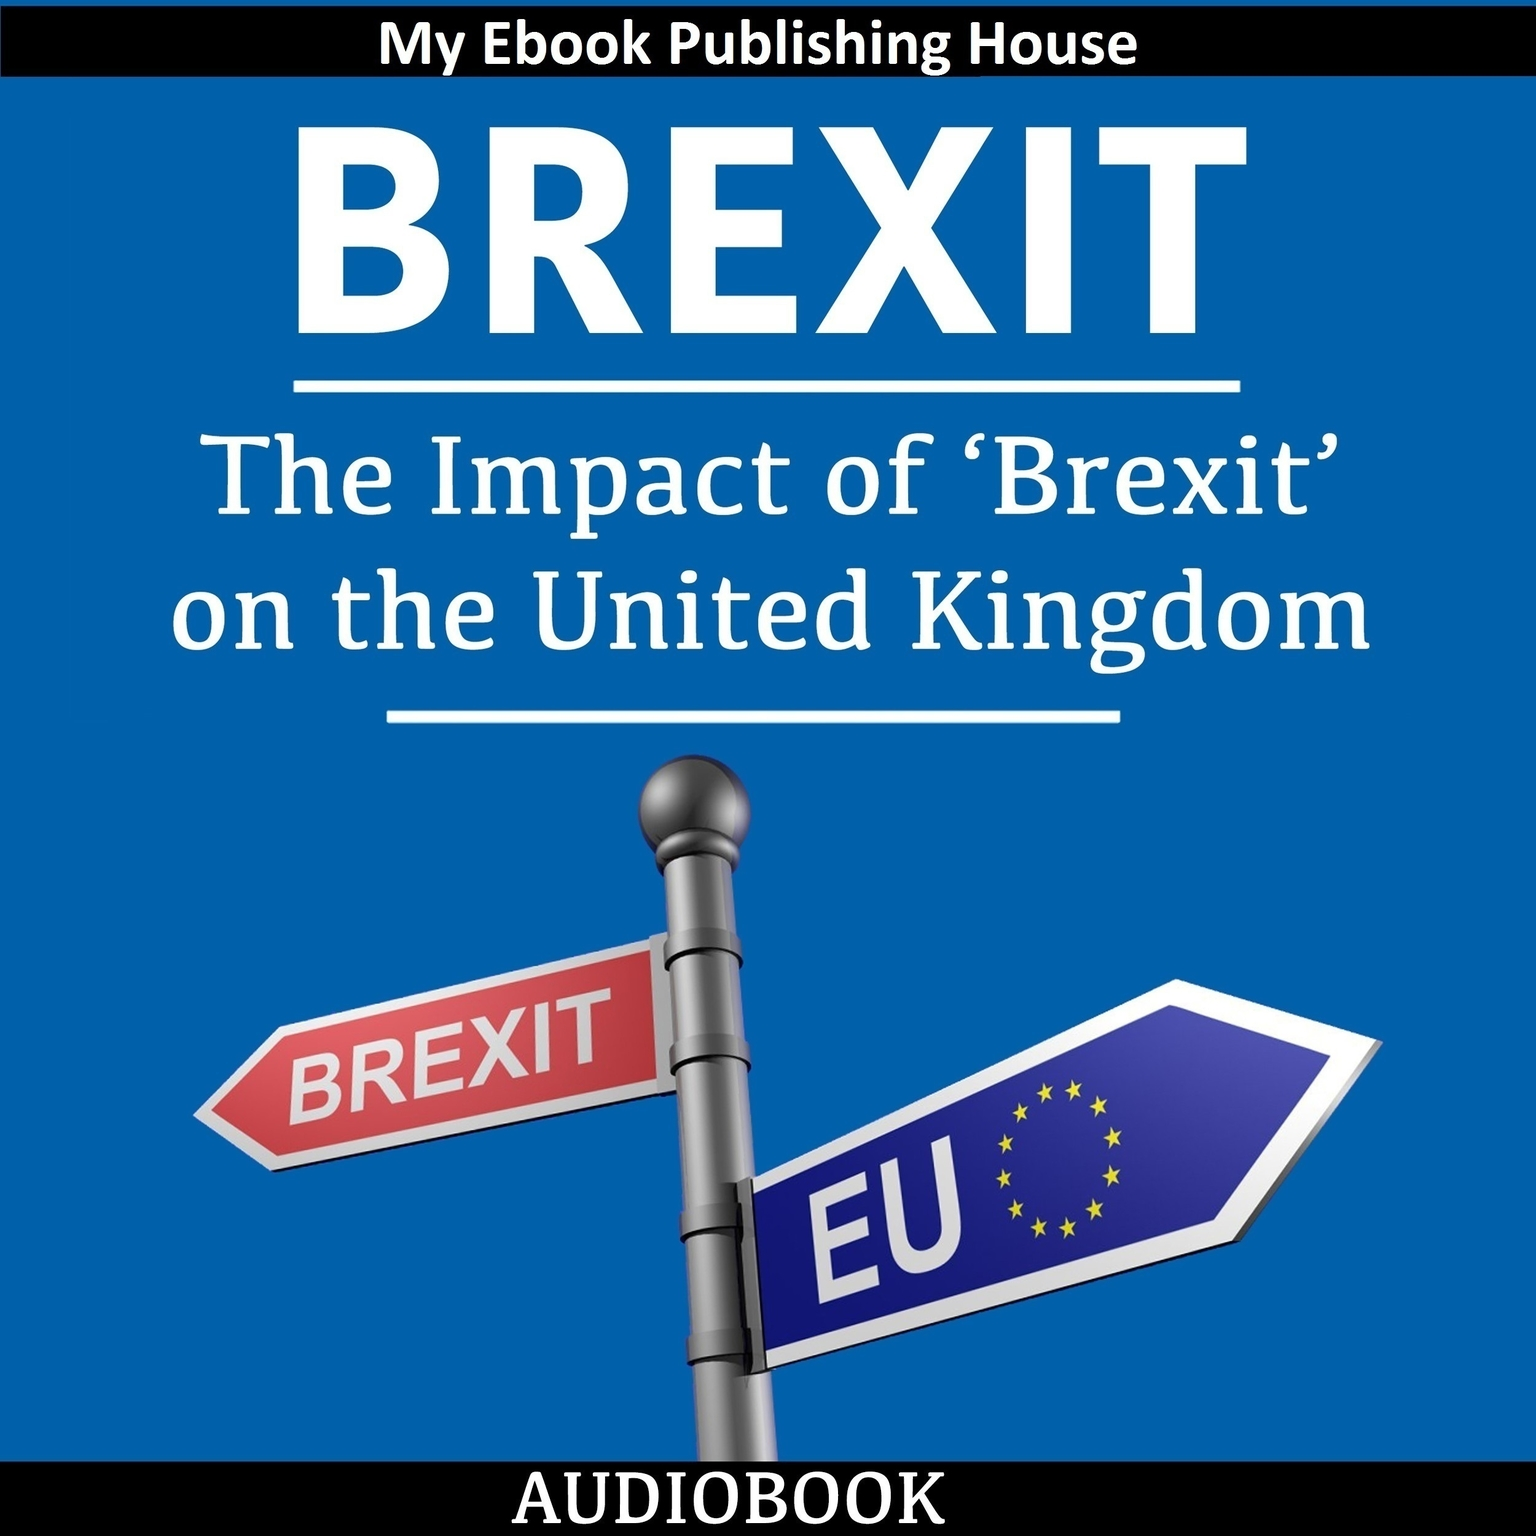 Brexit: The Impact of 'Brexit' on the United Kingdom Audiobook, by My Ebook Publishing House